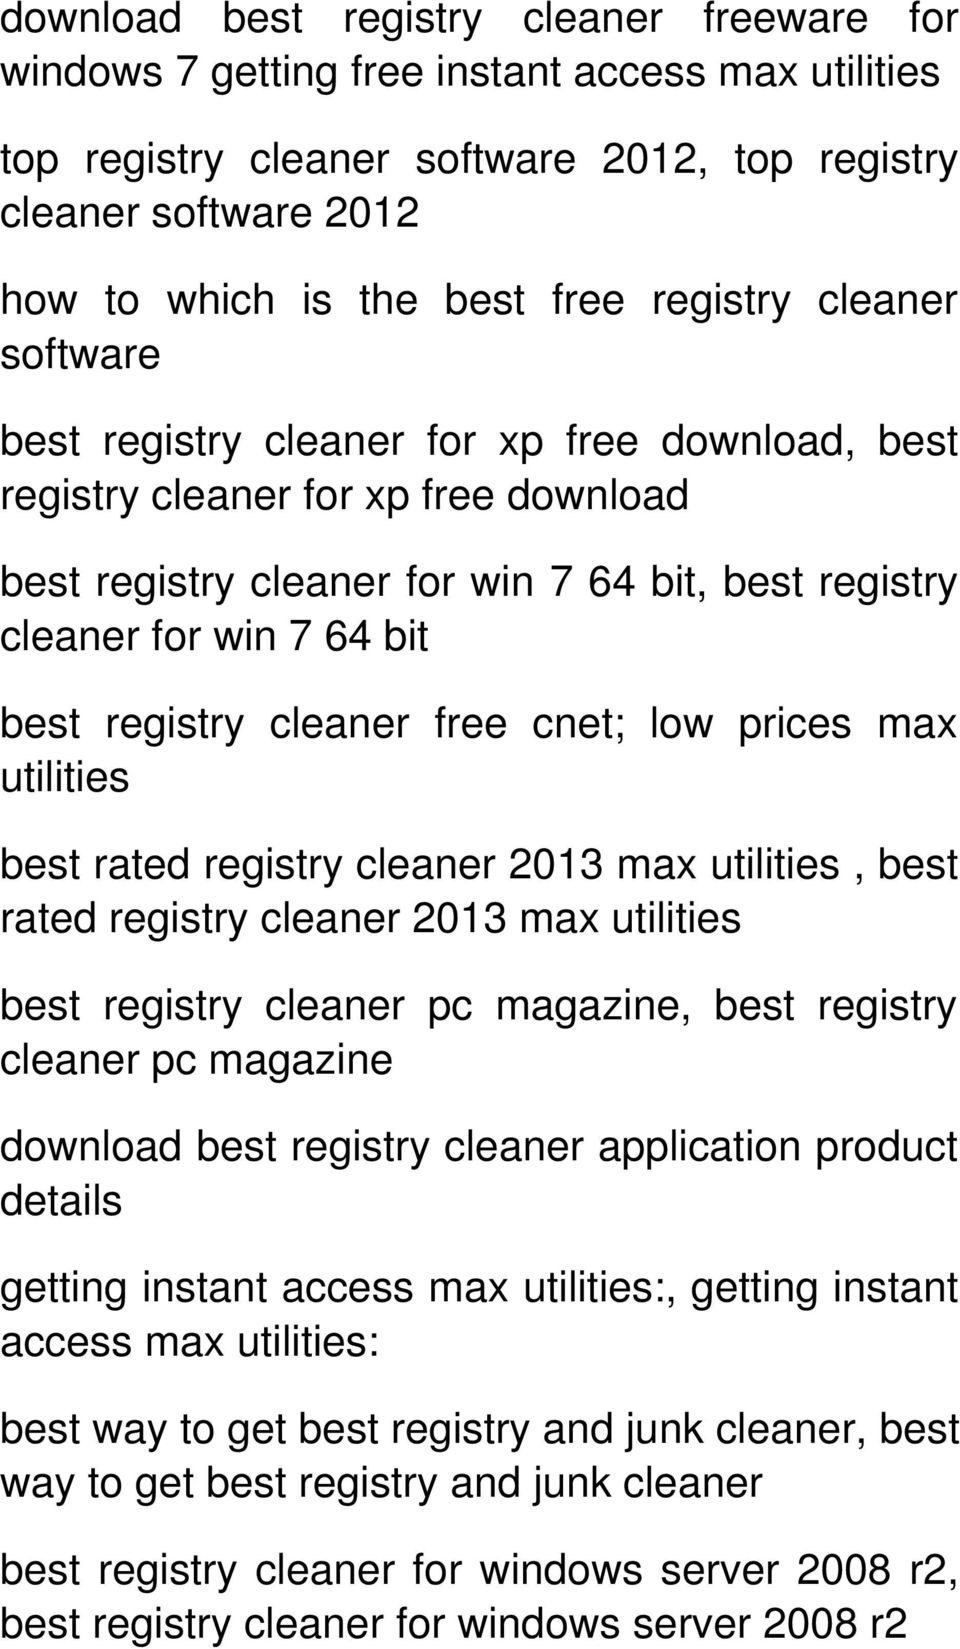 pc cleaner free download for windows 7 64 bit